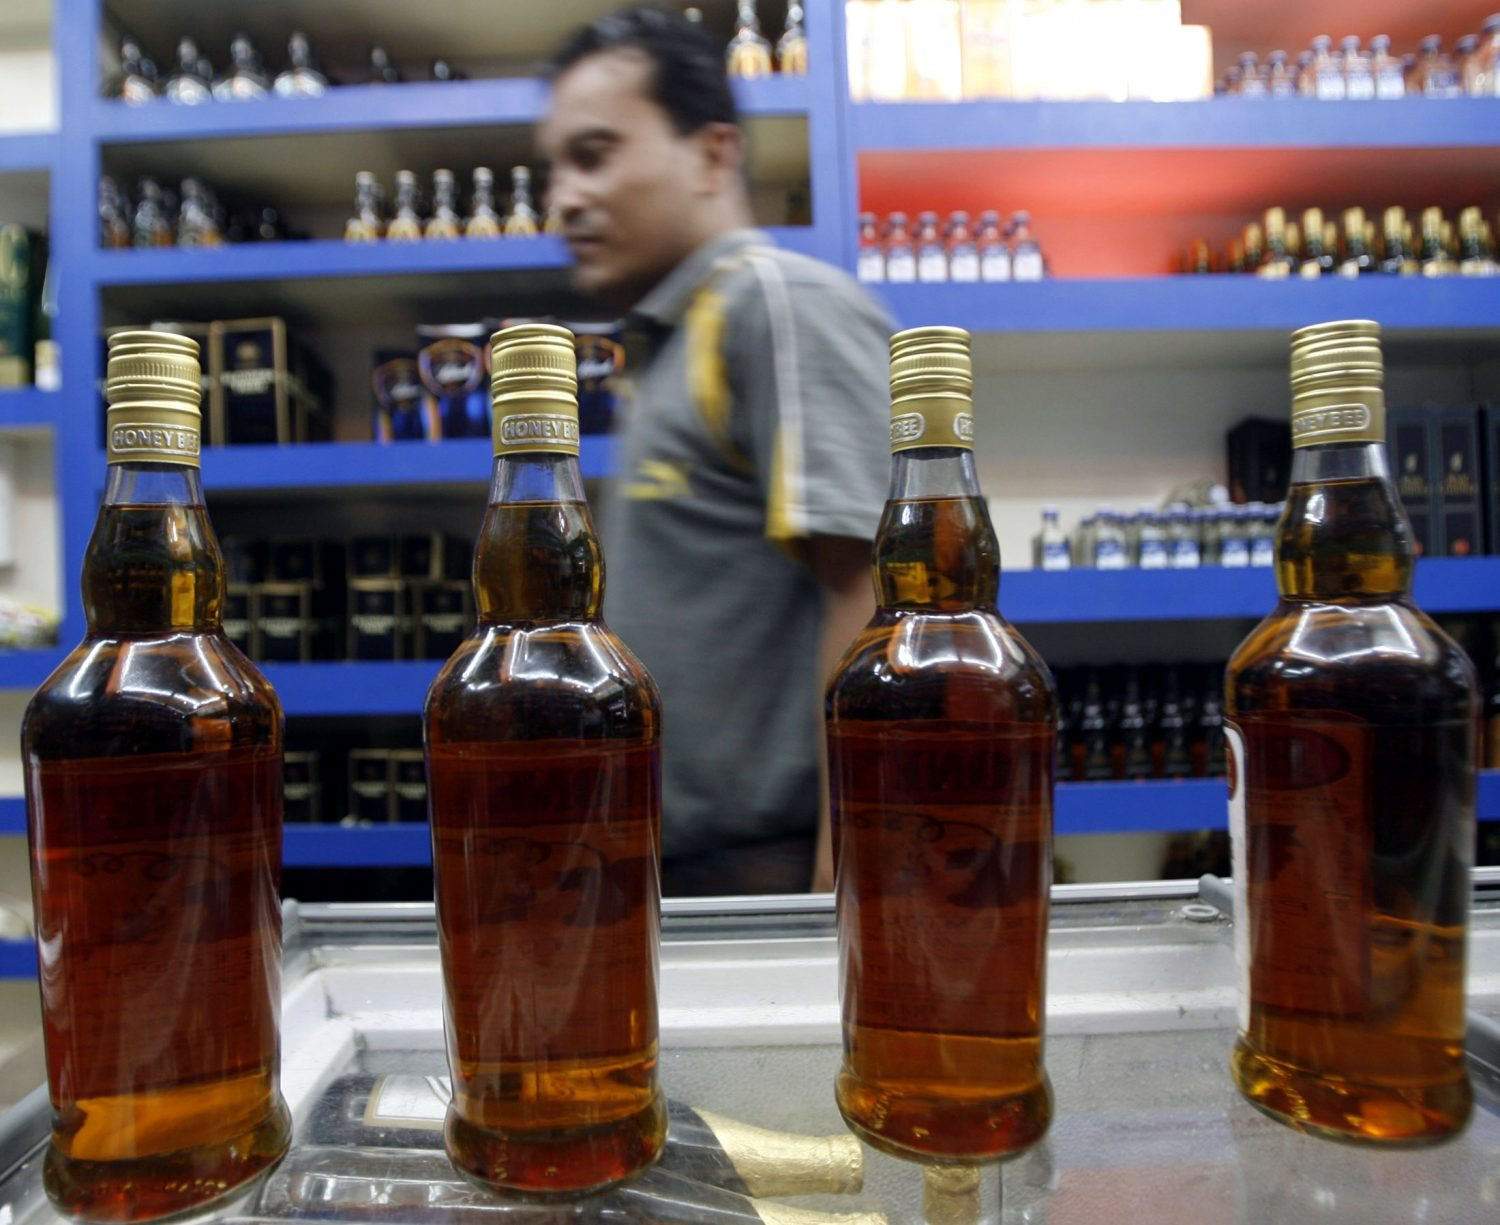 A man walks past bottles of brandy inside a shop selling alcohol in the northeastern Indian city of Siliguri August 19, 2008. REUTERS/Rupak De Chowdhuri (INDIA) - RTR21EMM